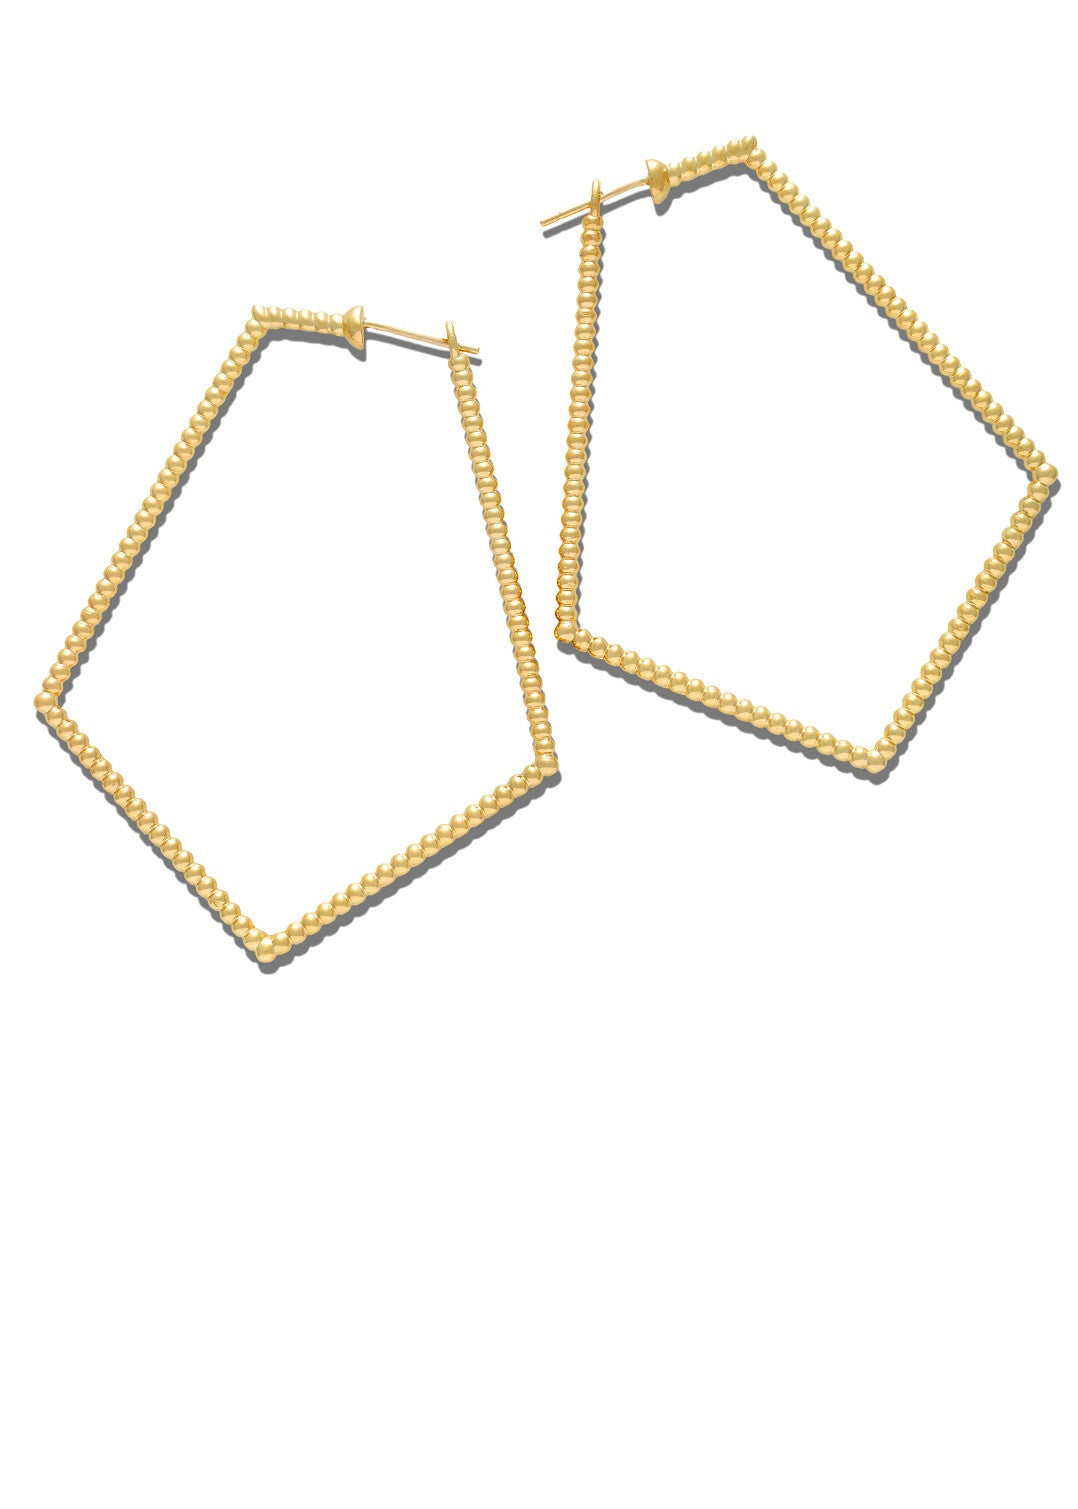 Lola Fenhirst 18K gold sybil pentagon earrings